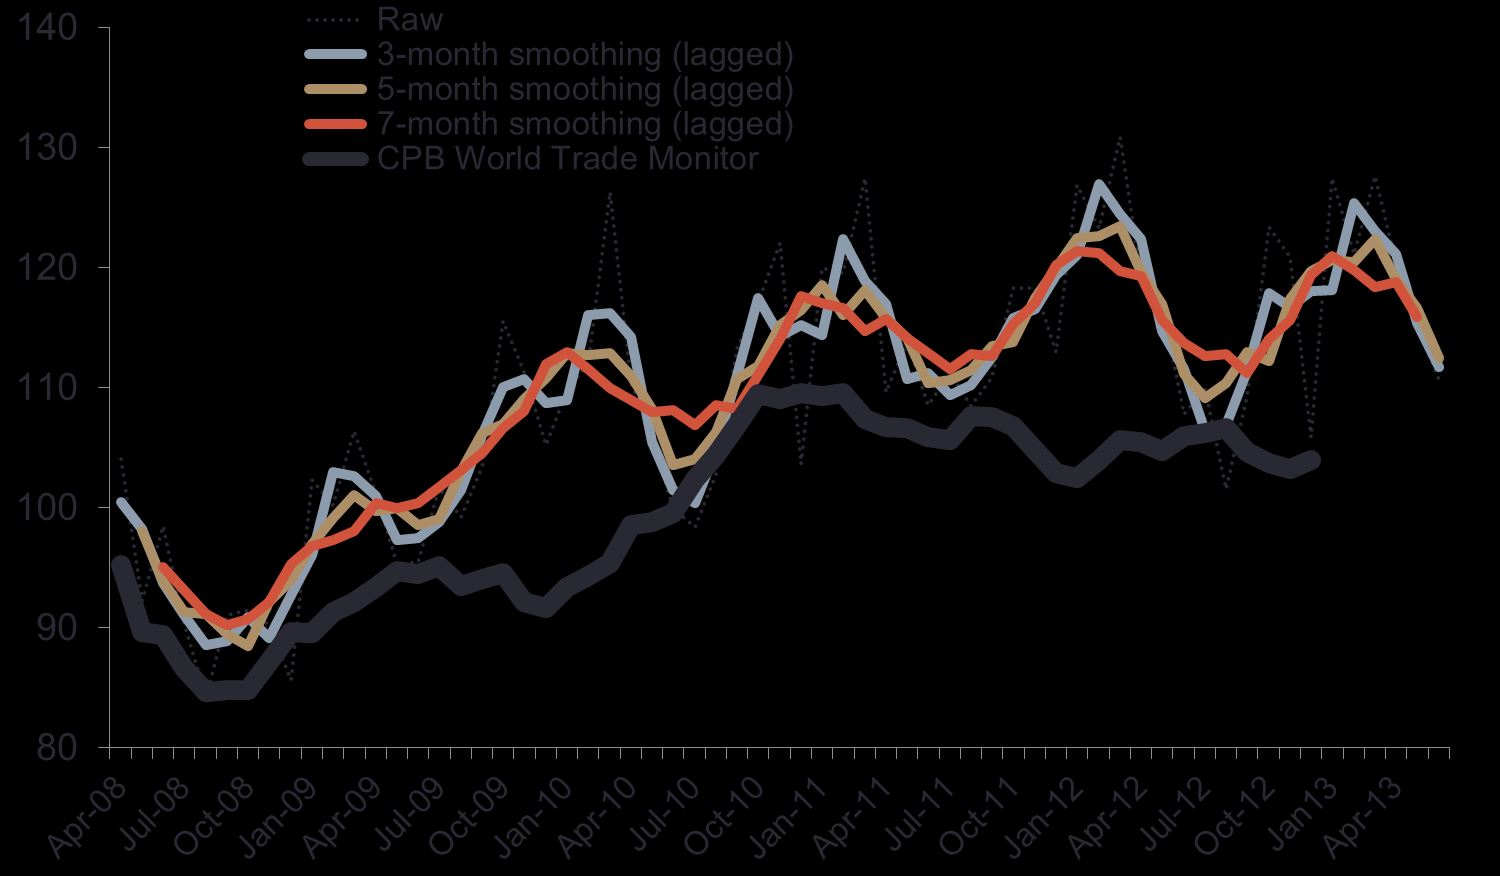 The close connection between new demand and global trade is even stronger when the new demand for domains data is smoothed to remove monthly variability.